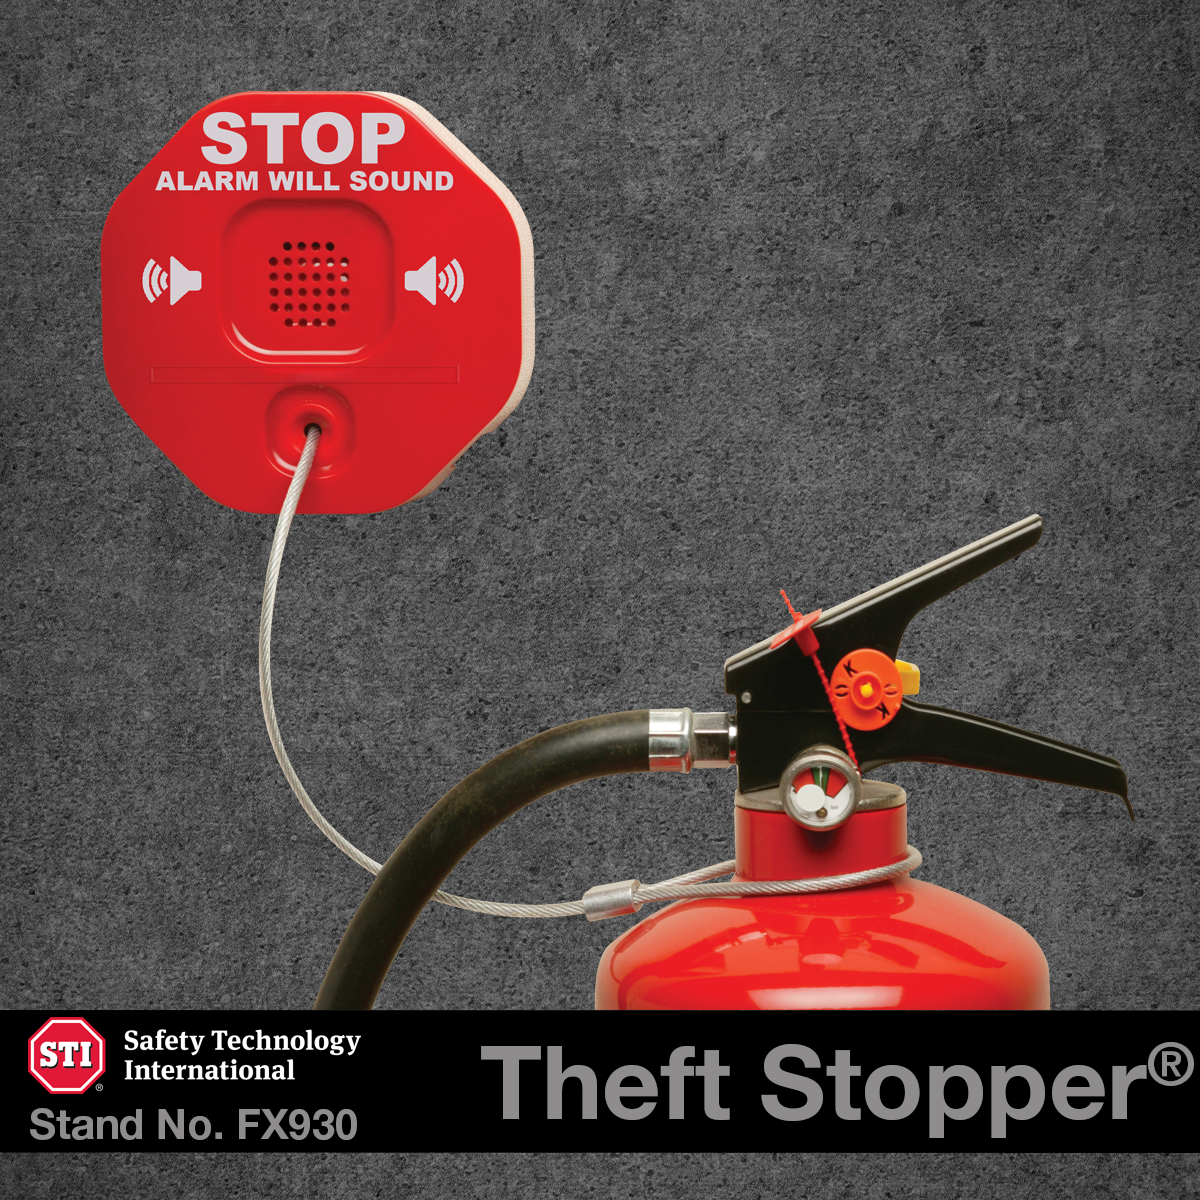 STI-6200 Theft Stopper ®